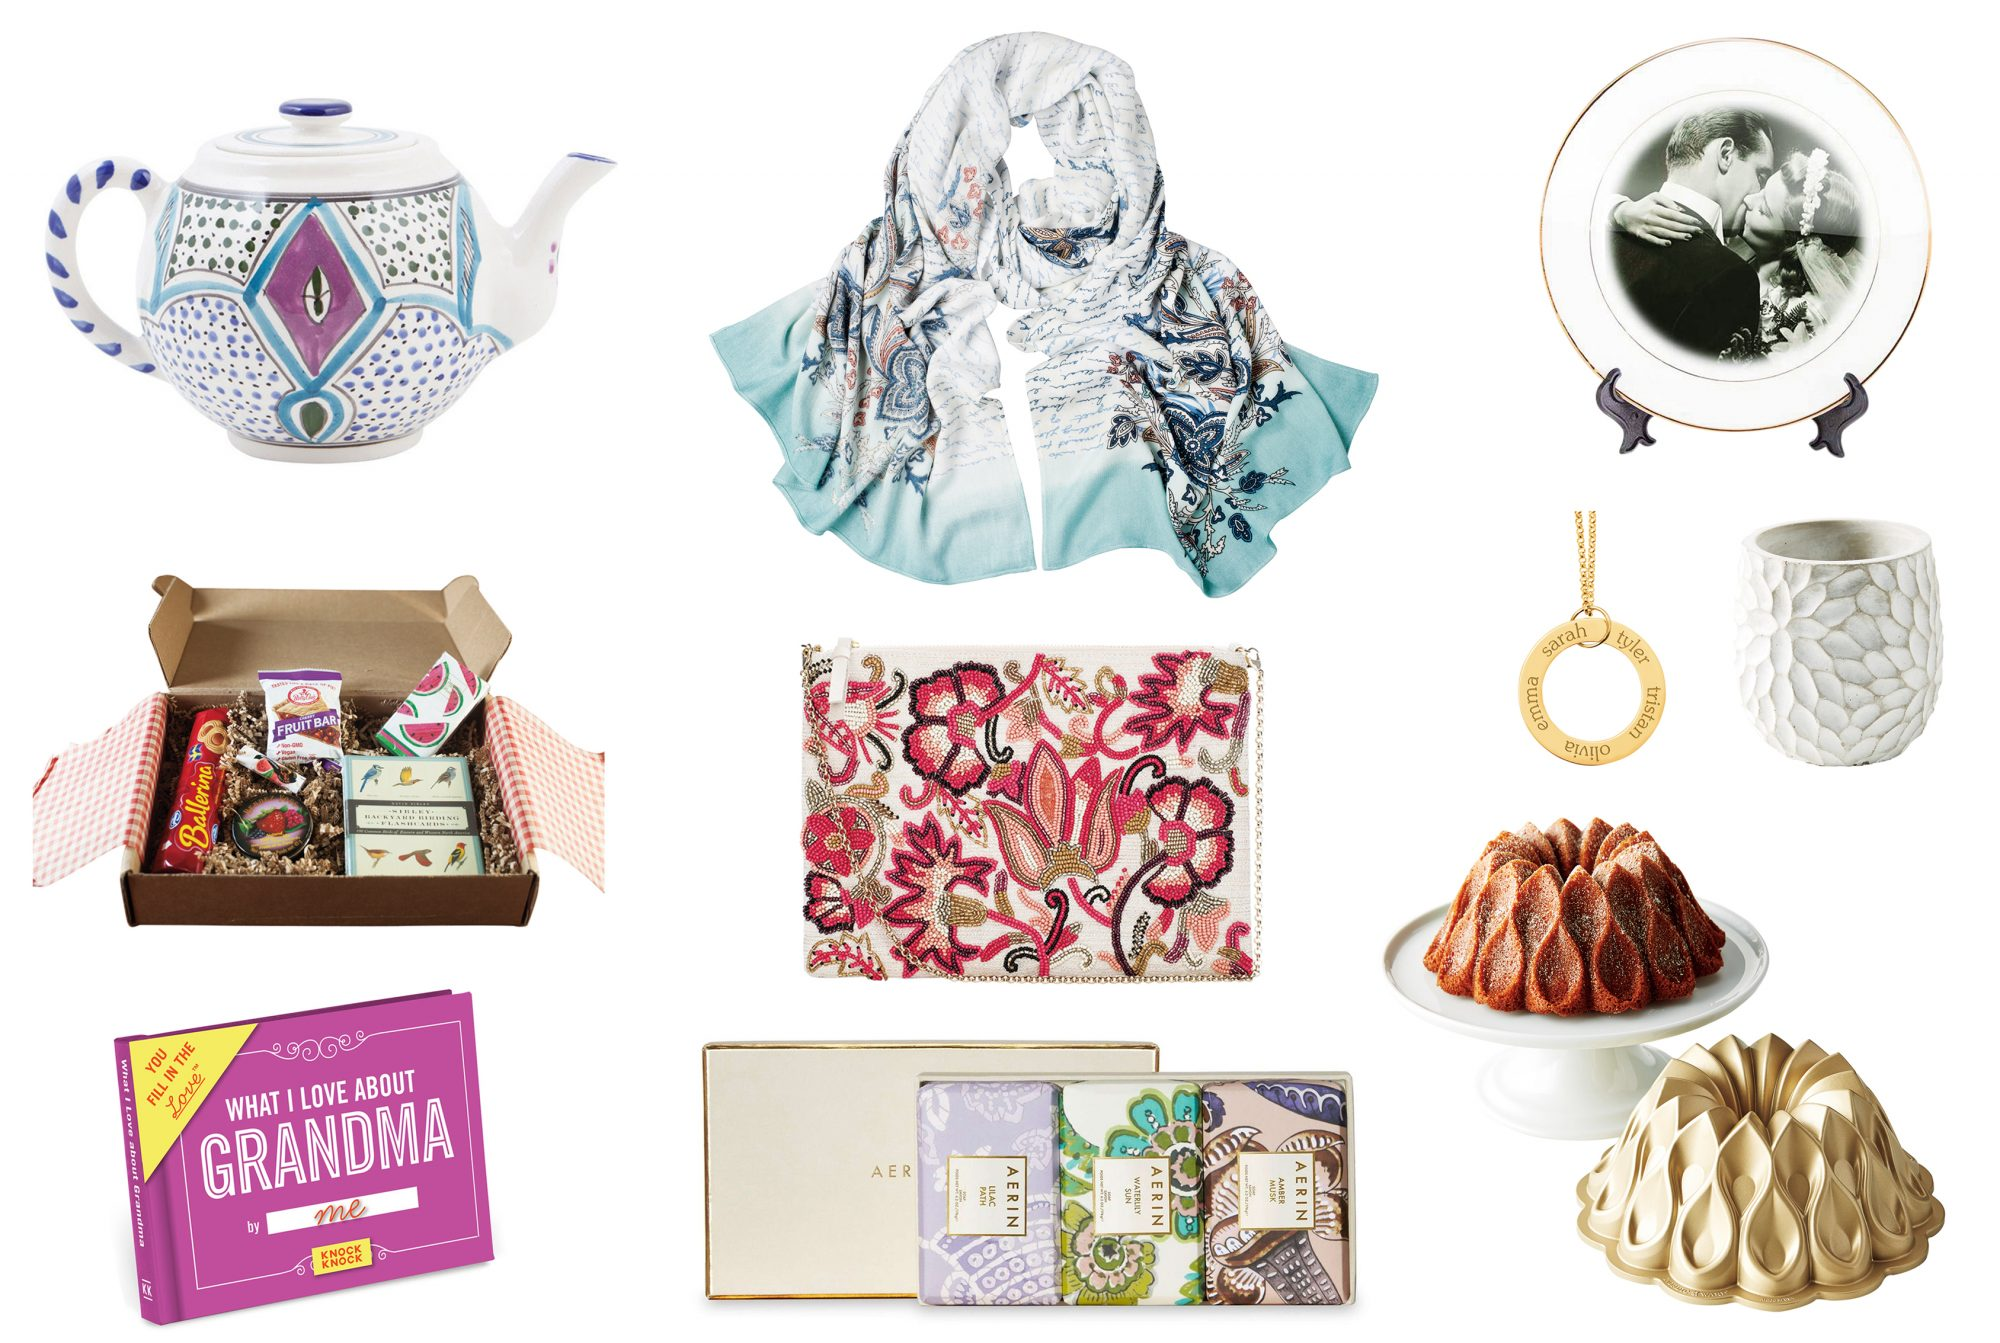 Grandmother Mother's Day Gifts Tout